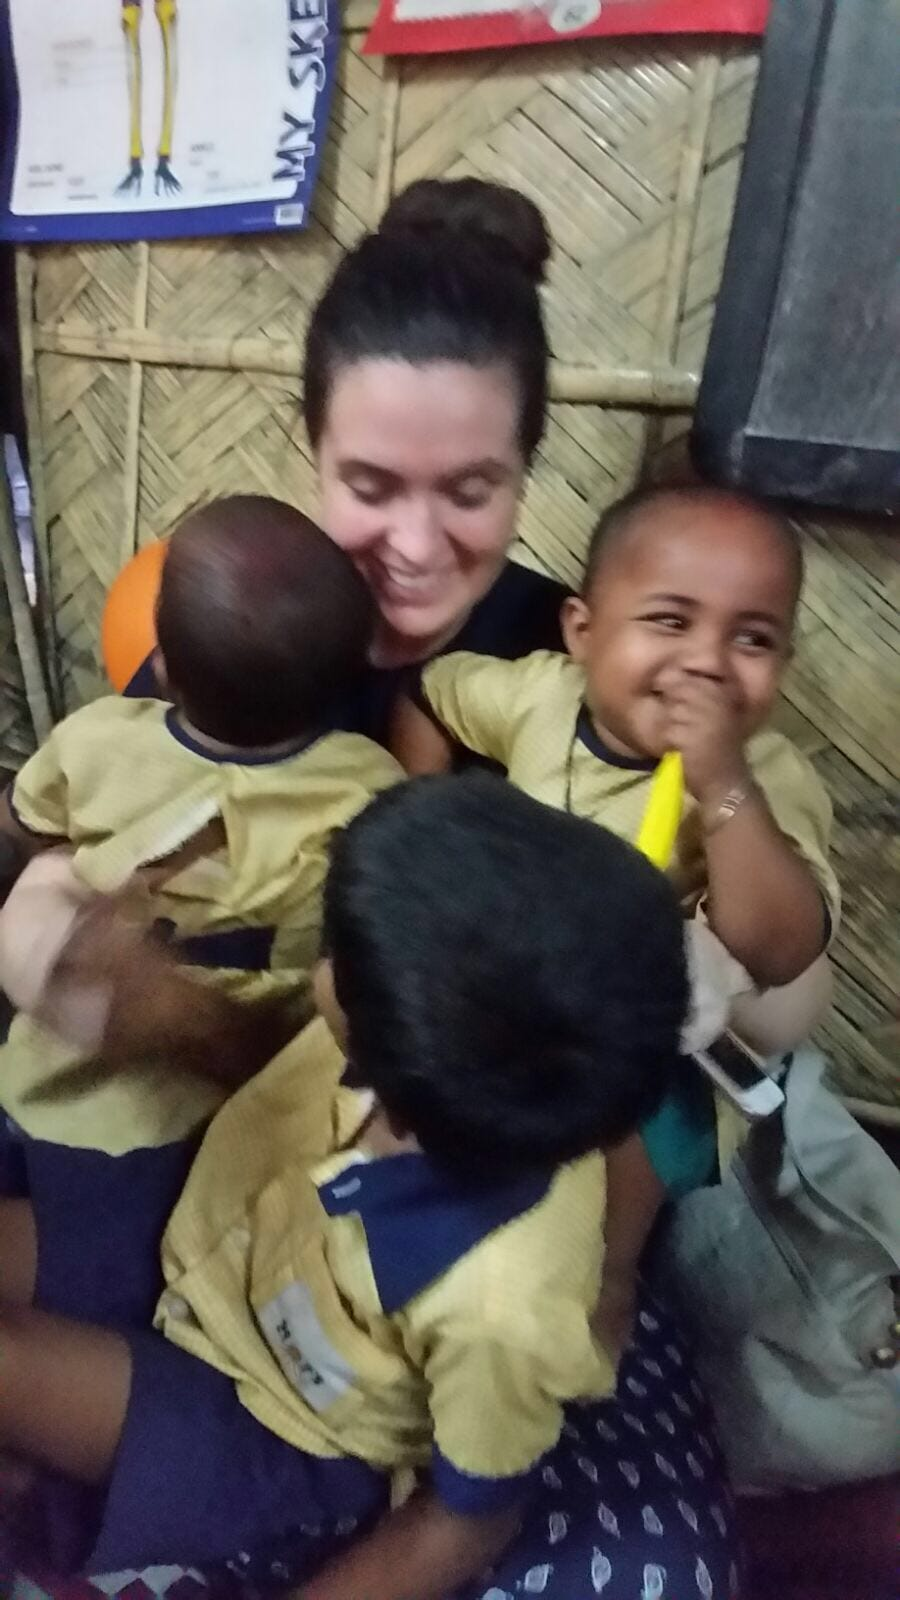 April 2016: Desmond College staff and students had a wonderful time in Kolkata meeting the children who are helped and supported by the HOPE foundation